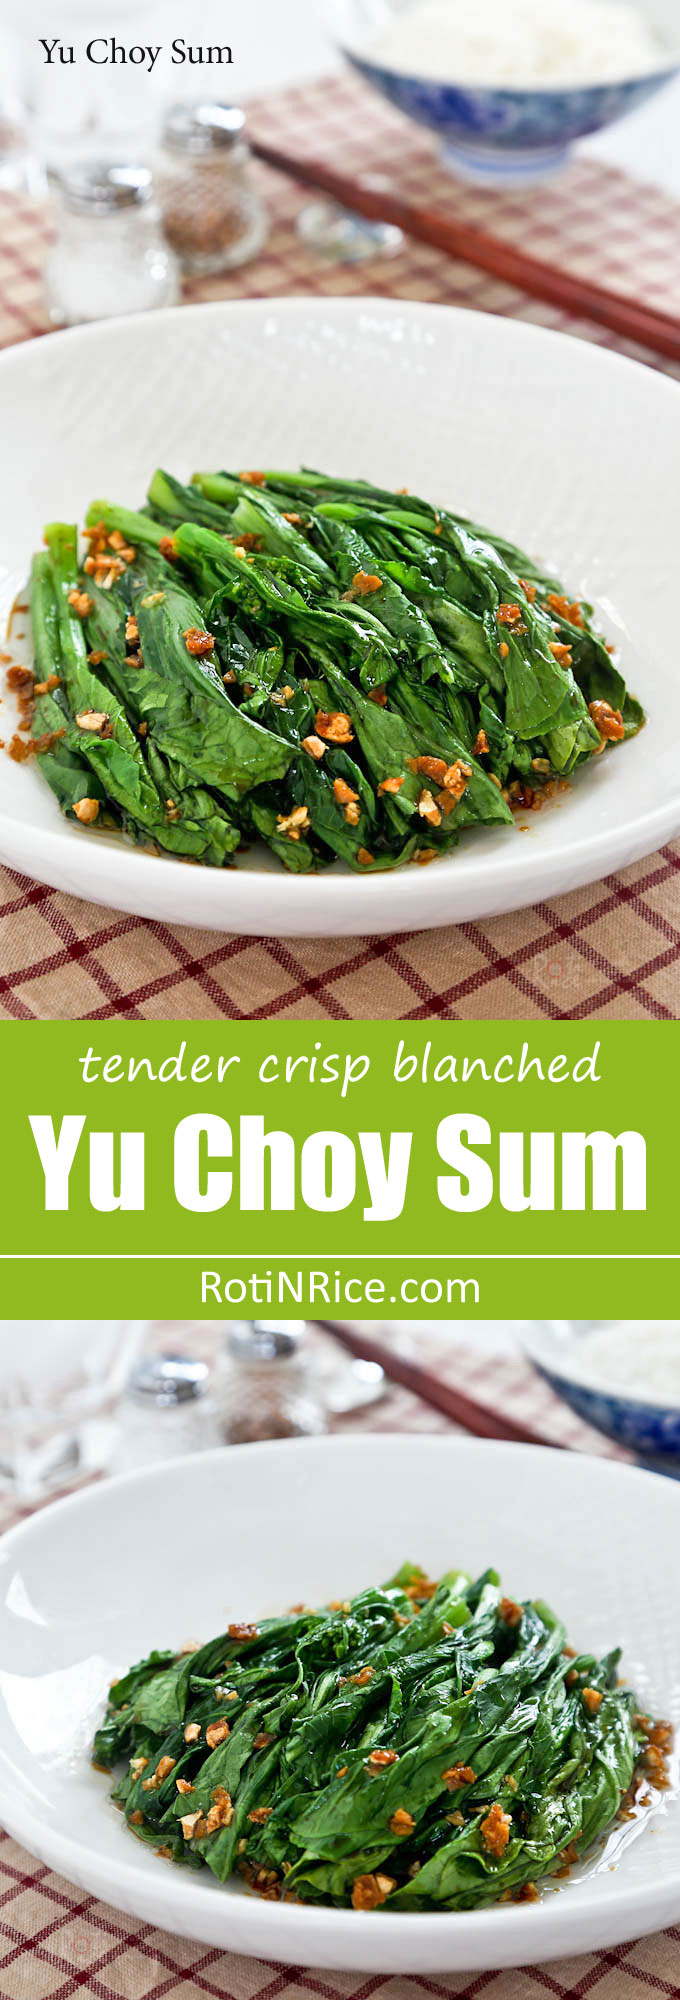 Tender crisp blanched Yu Choy Sum in a simple garlic oil and soy sauce dressing. Just a handful of ingredients and only minutes to prepare. | RotiNRice.com